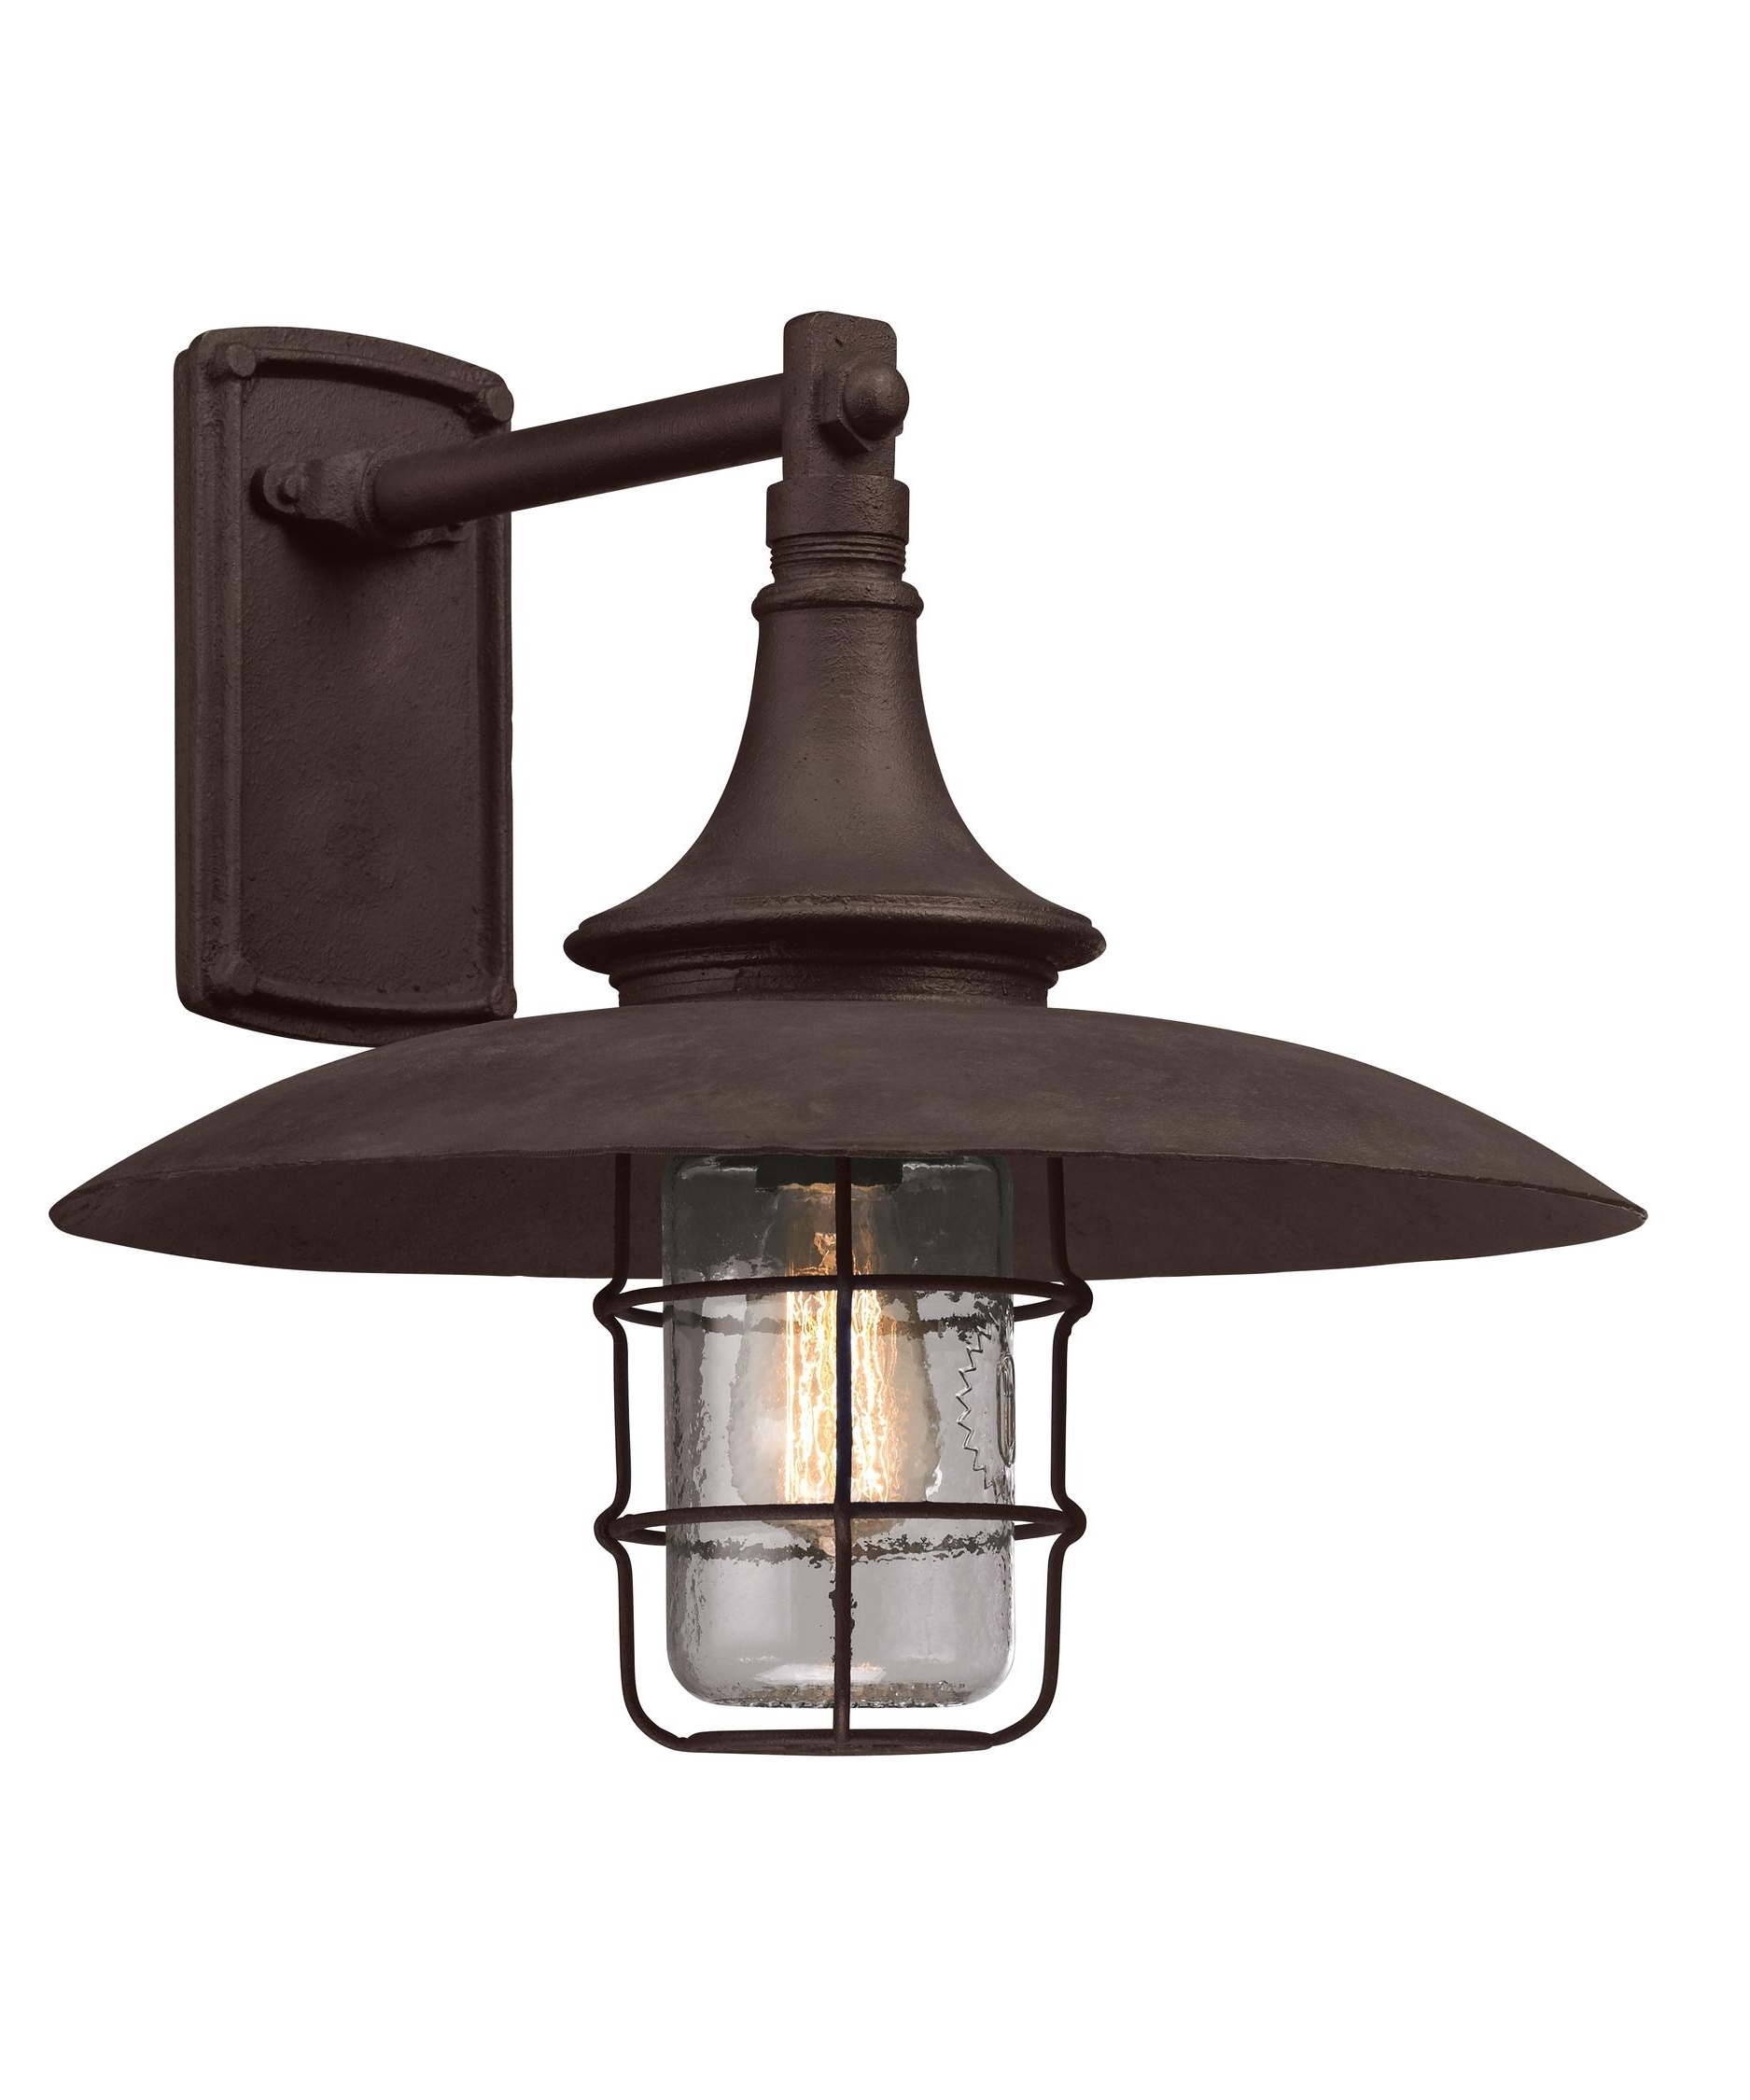 Latest Troy Lighting B3222 Allegany 16 Inch Wide 1 Light Outdoor Wall Light Pertaining To Beach Outdoor Wall Lighting (View 10 of 20)